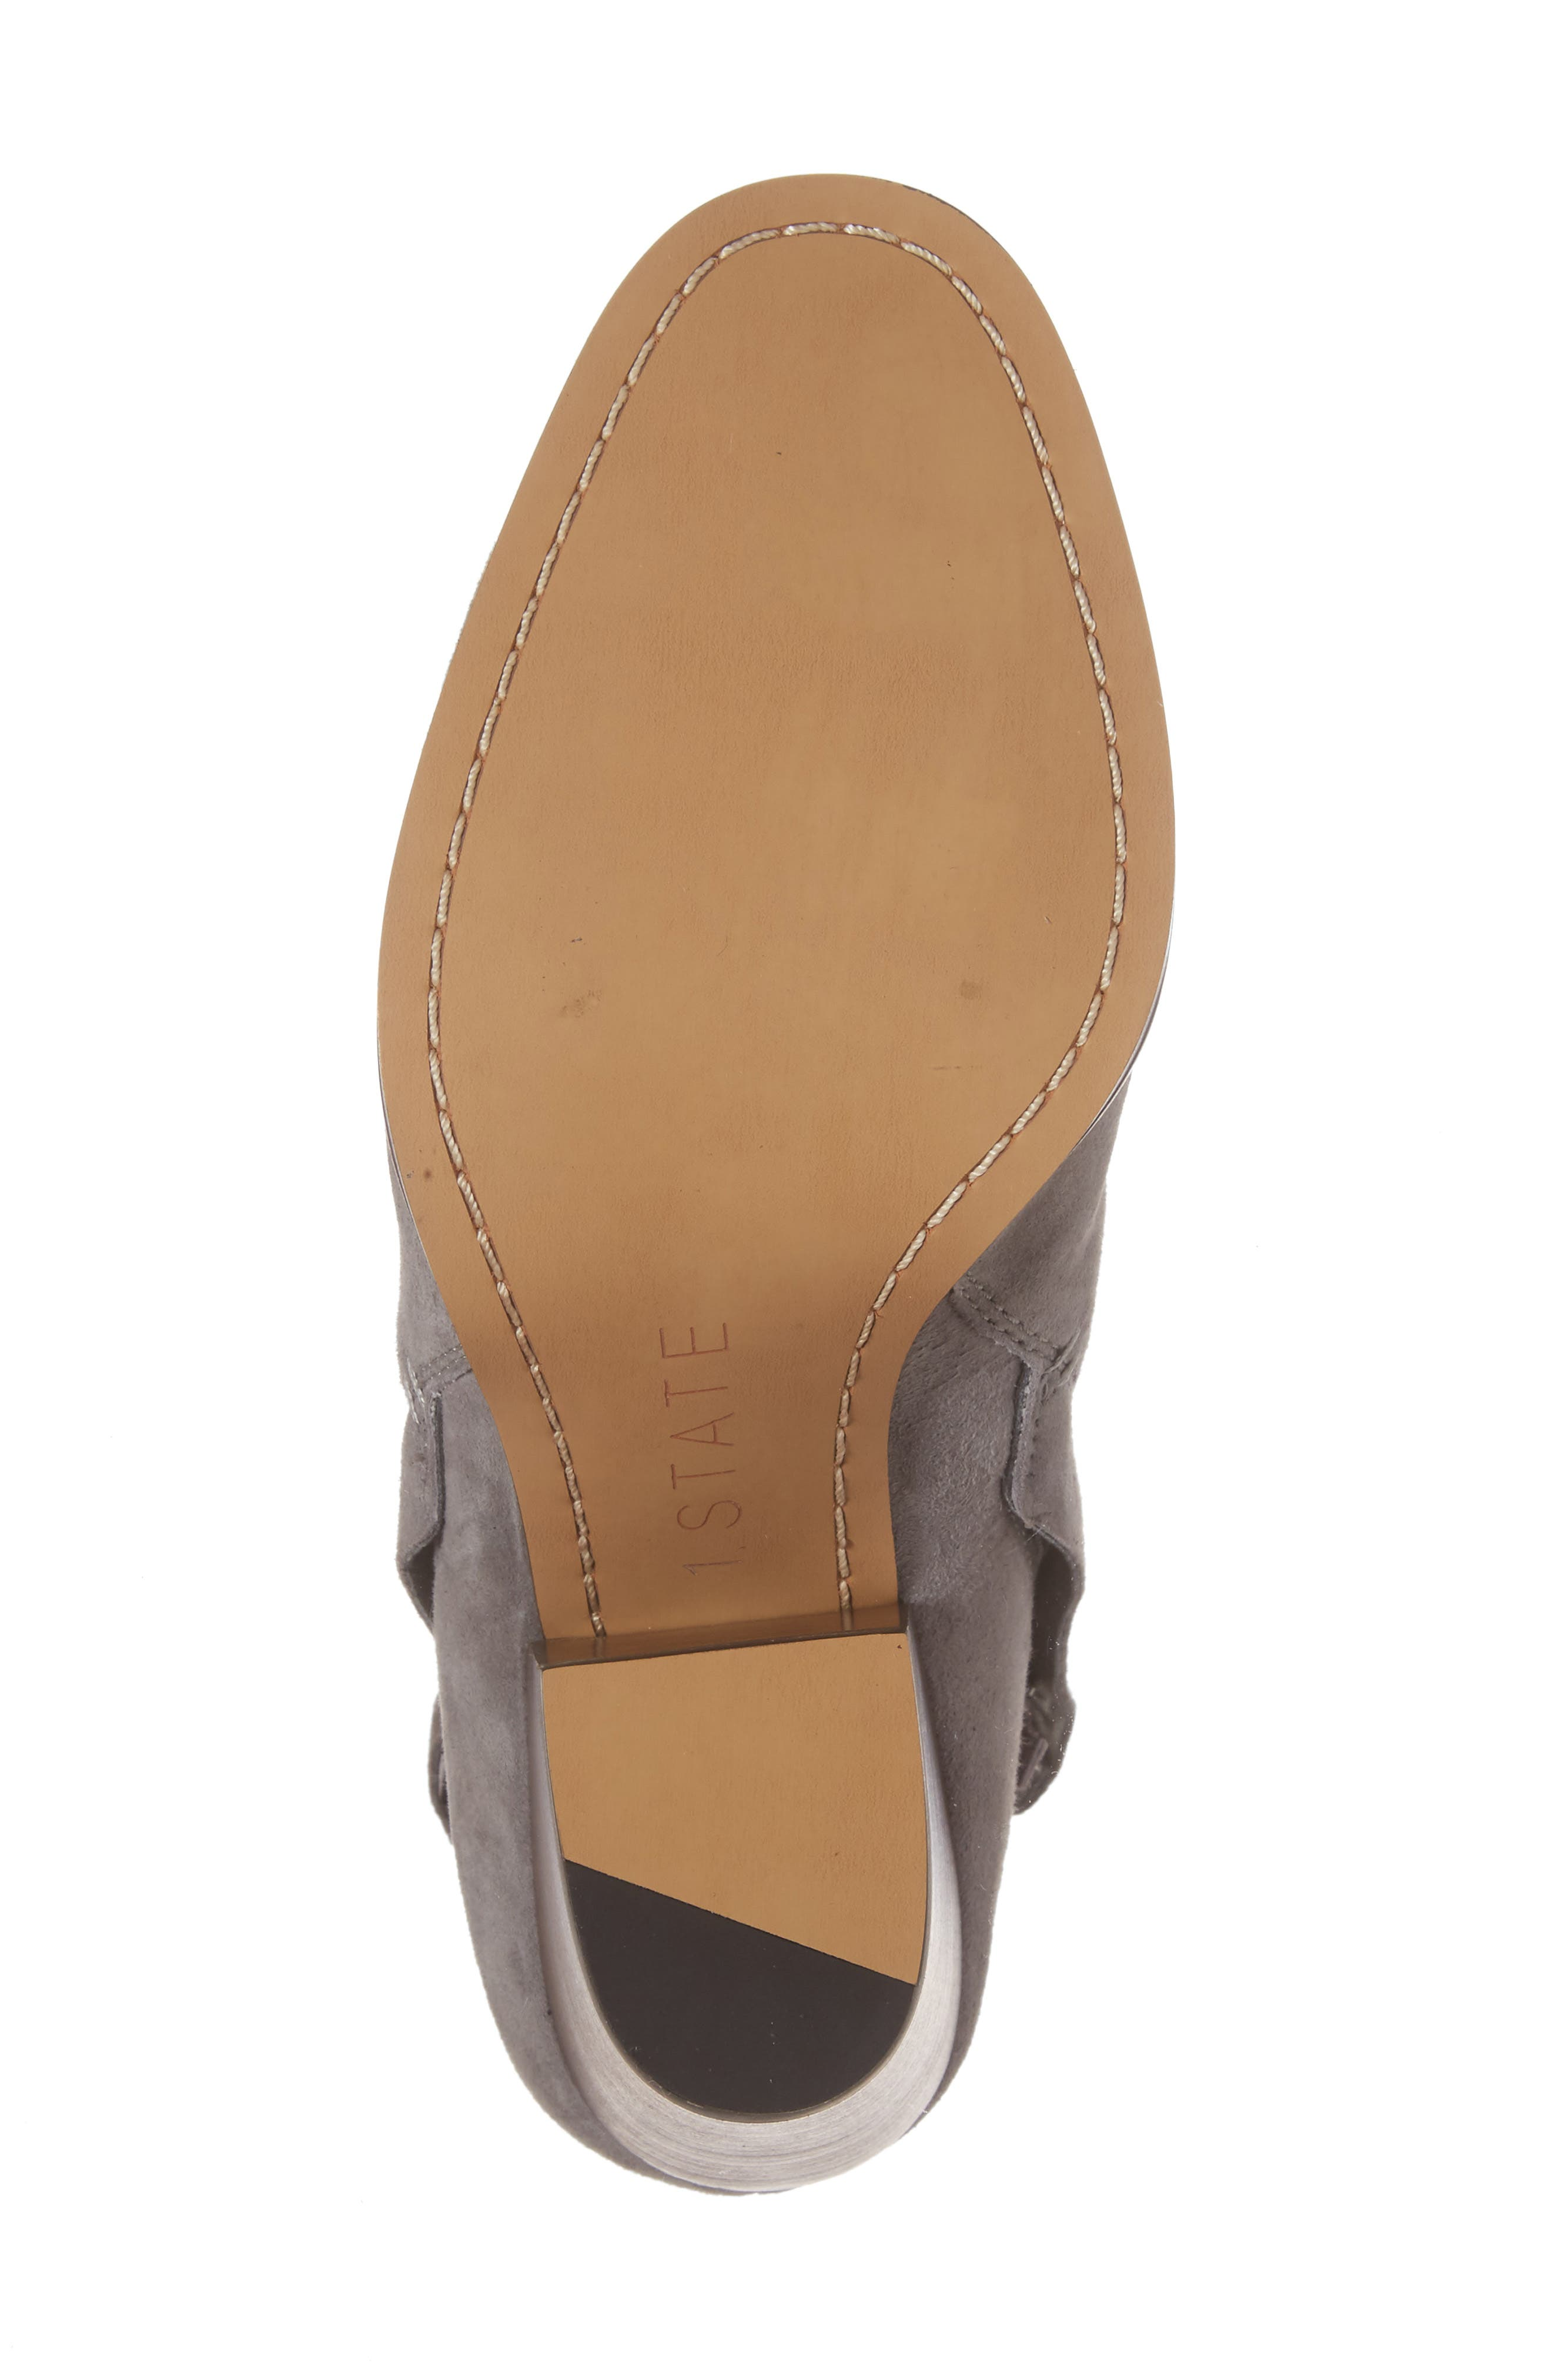 Taila Angle Zip Bootie,                             Alternate thumbnail 12, color,